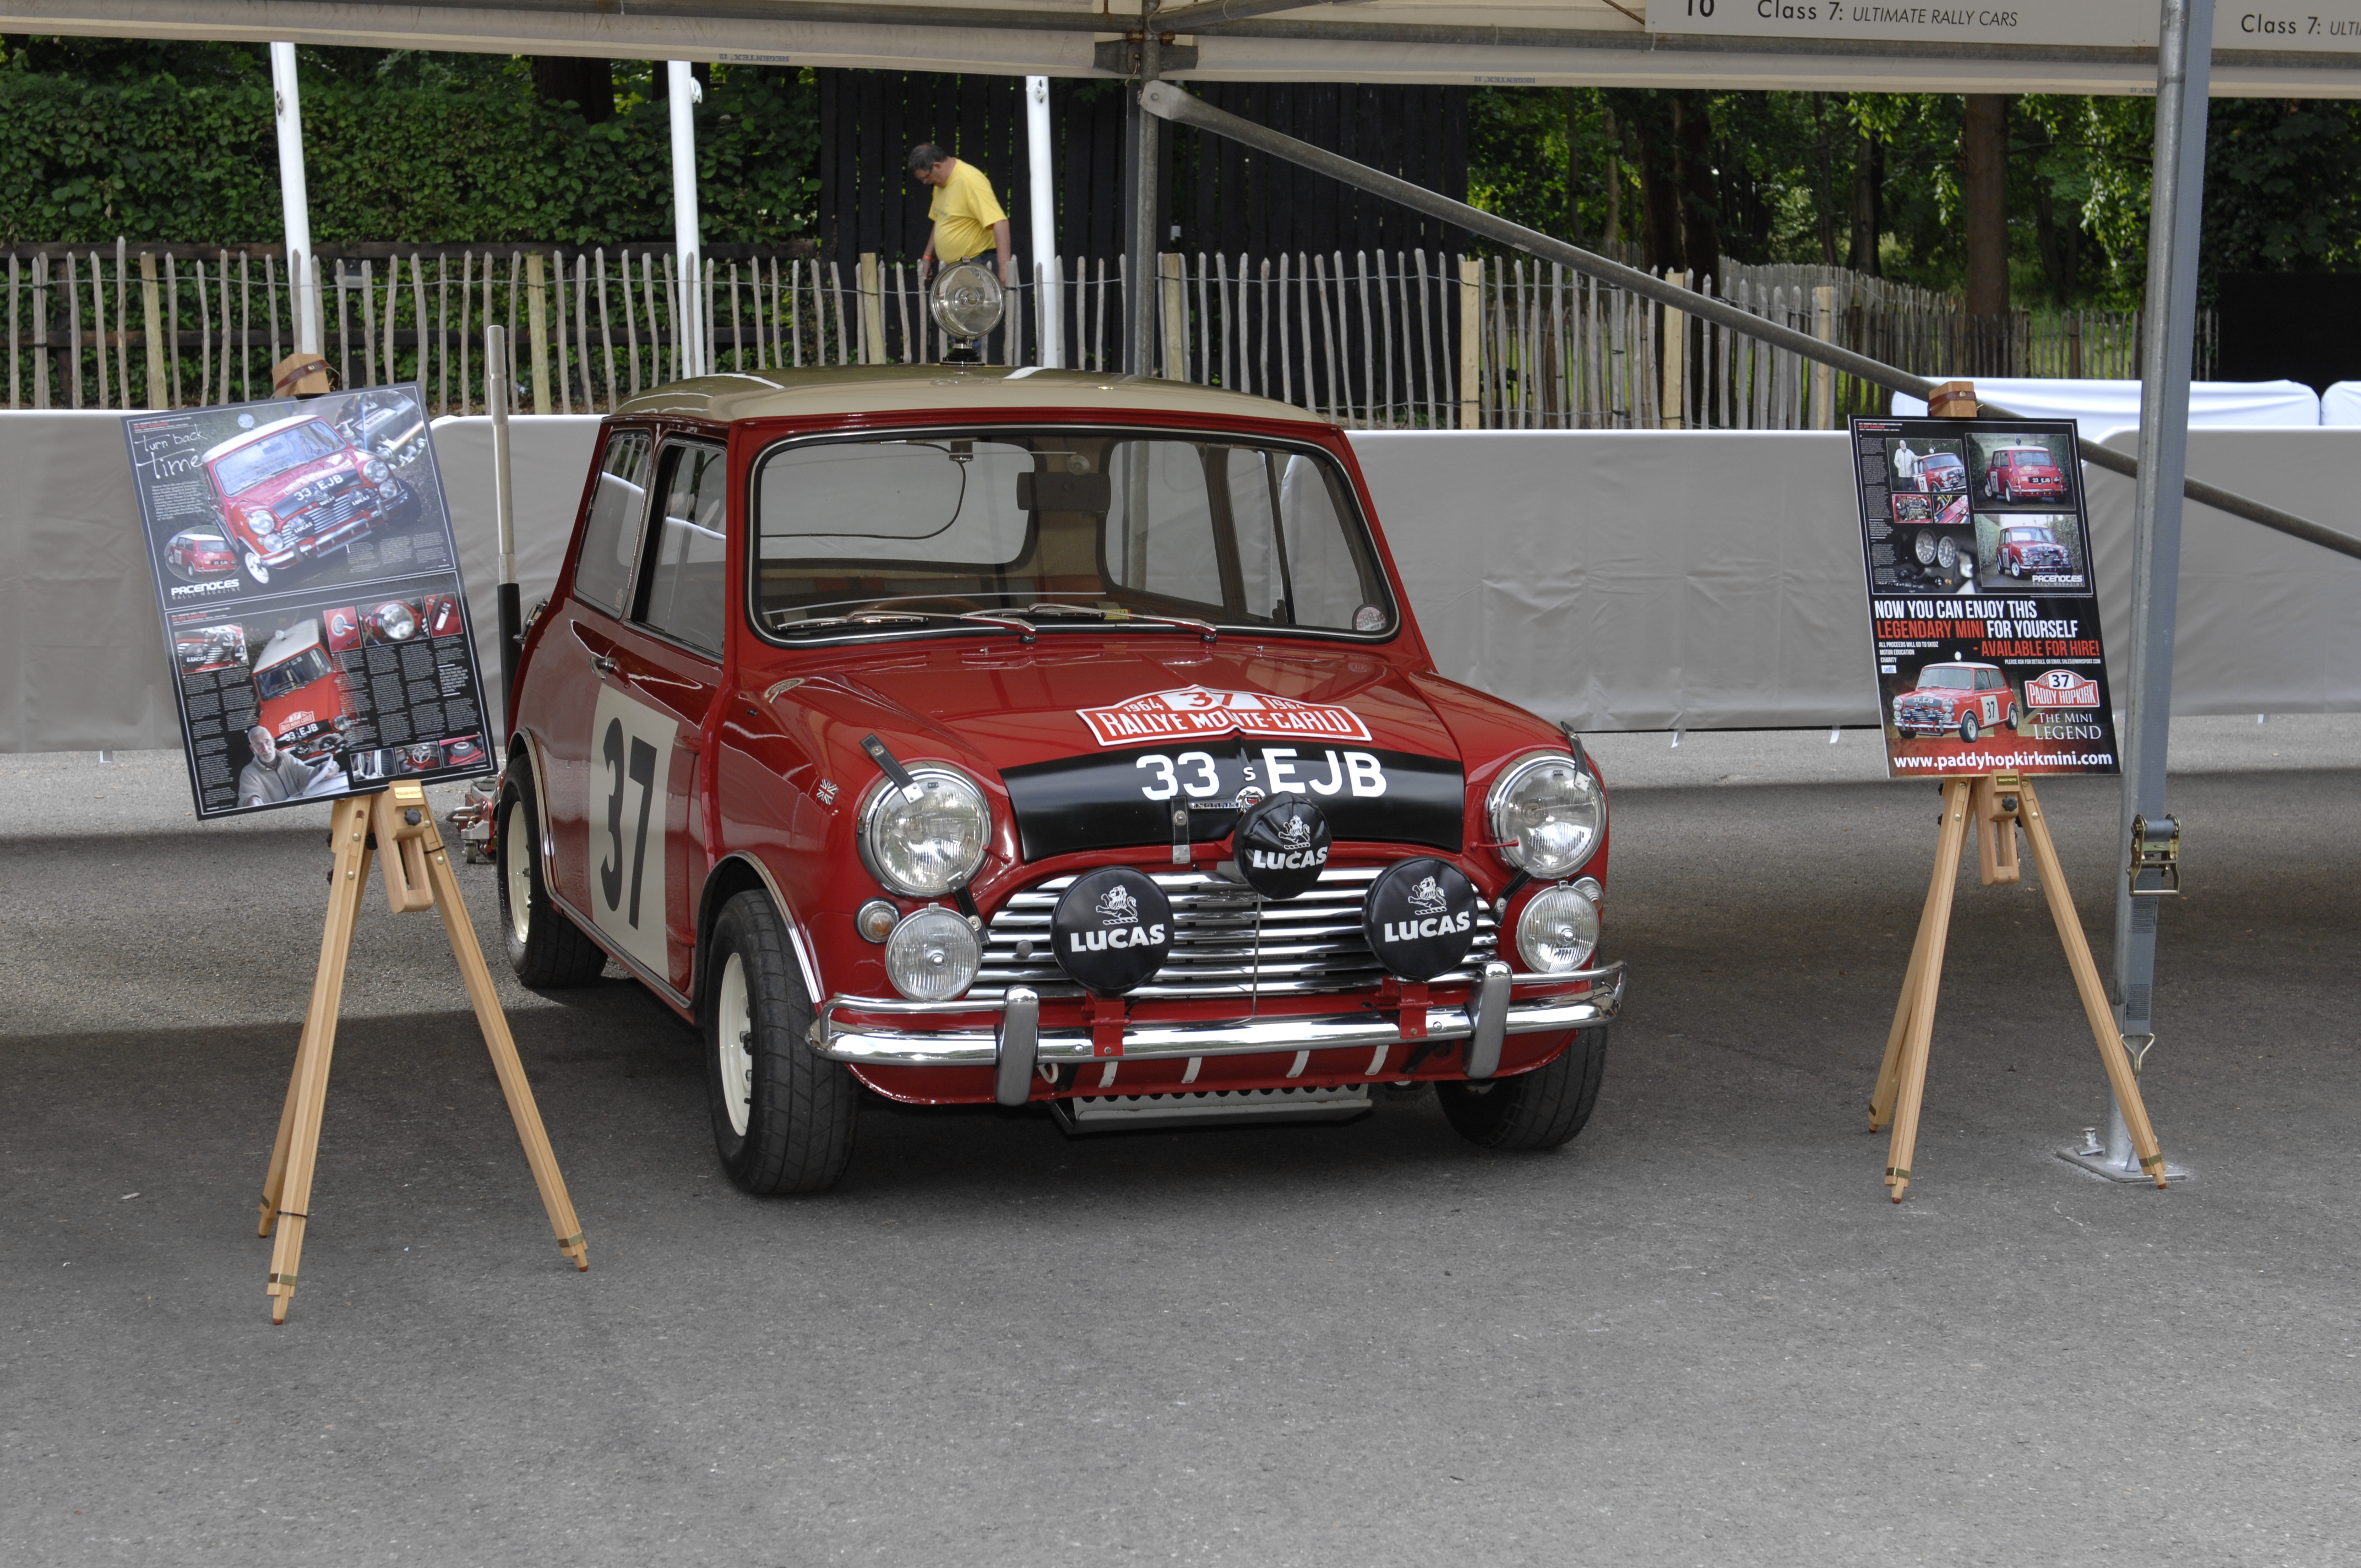 Probably the most famous of all Mini Coopers, 33EJB which the Irish Hero Paddy Hopkirk used to win the 1964 Monte Carlo Rally.